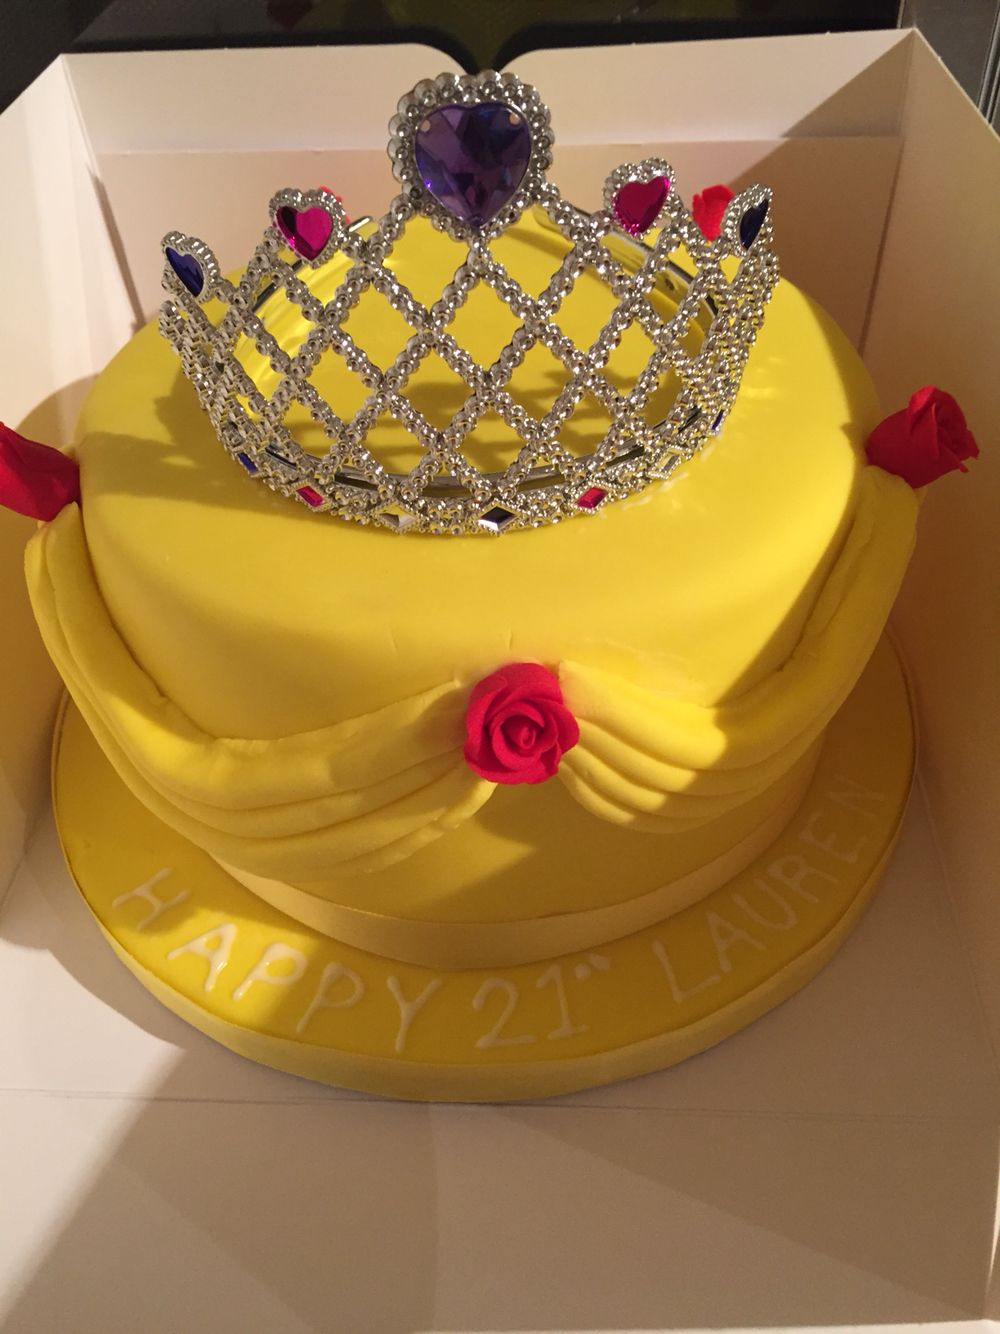 Princess belle cake made for my best friends 21st birthday